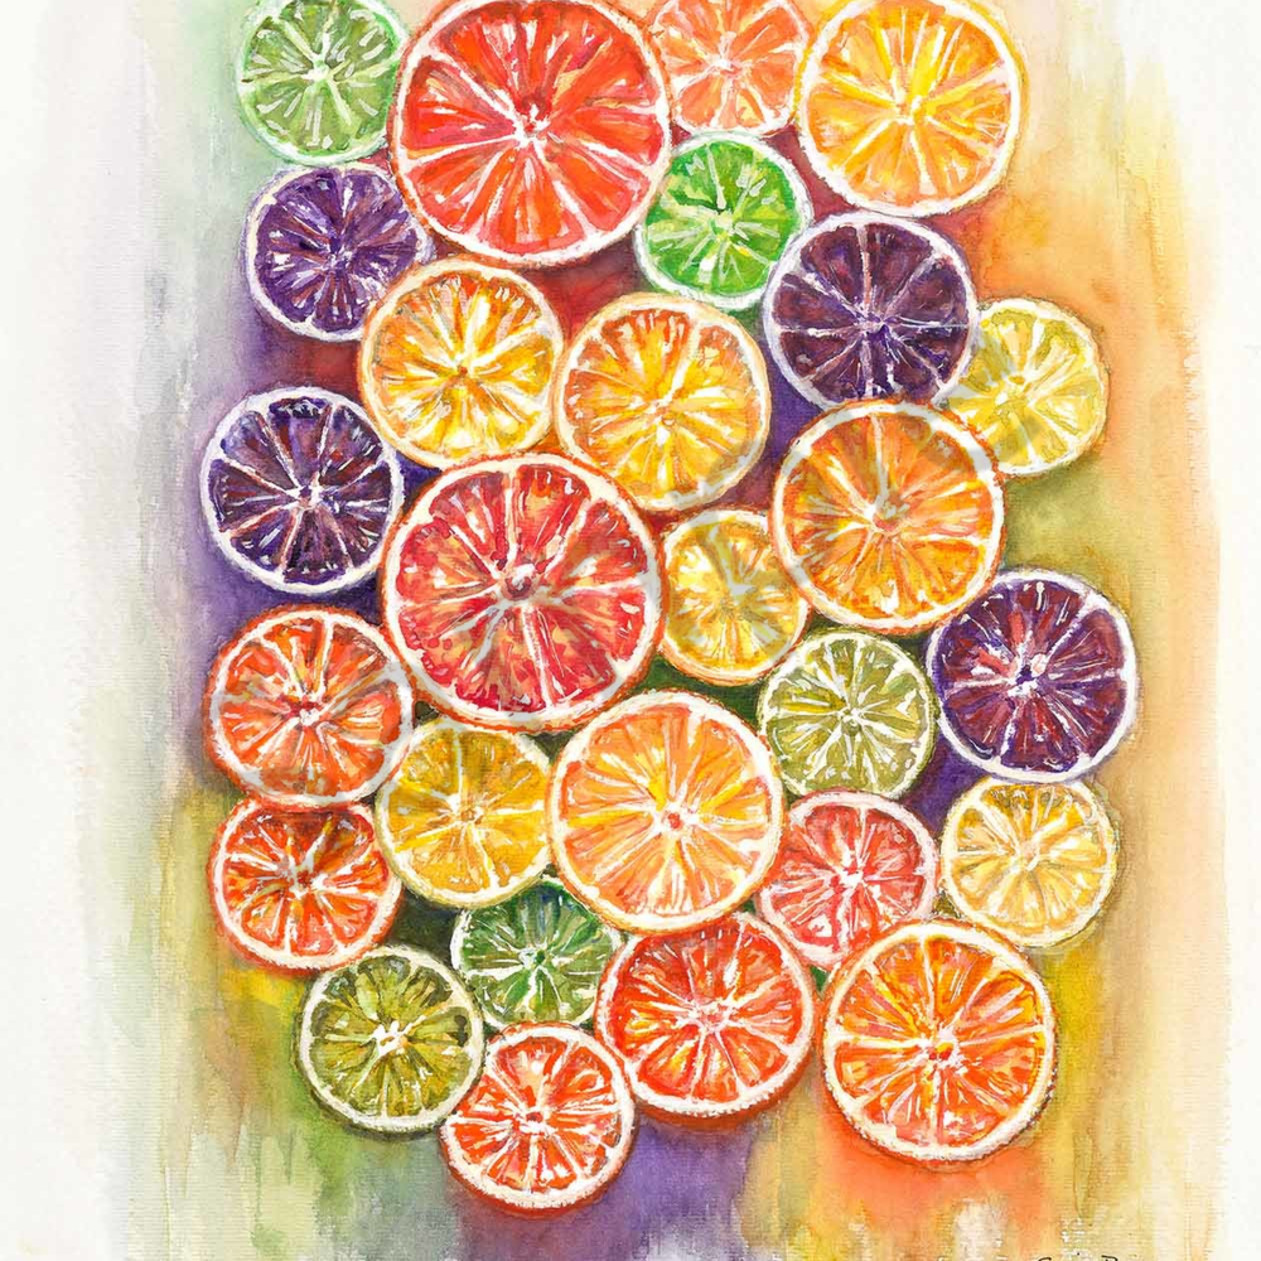 Sue battis 004 citrus slices 2000px ngrigq